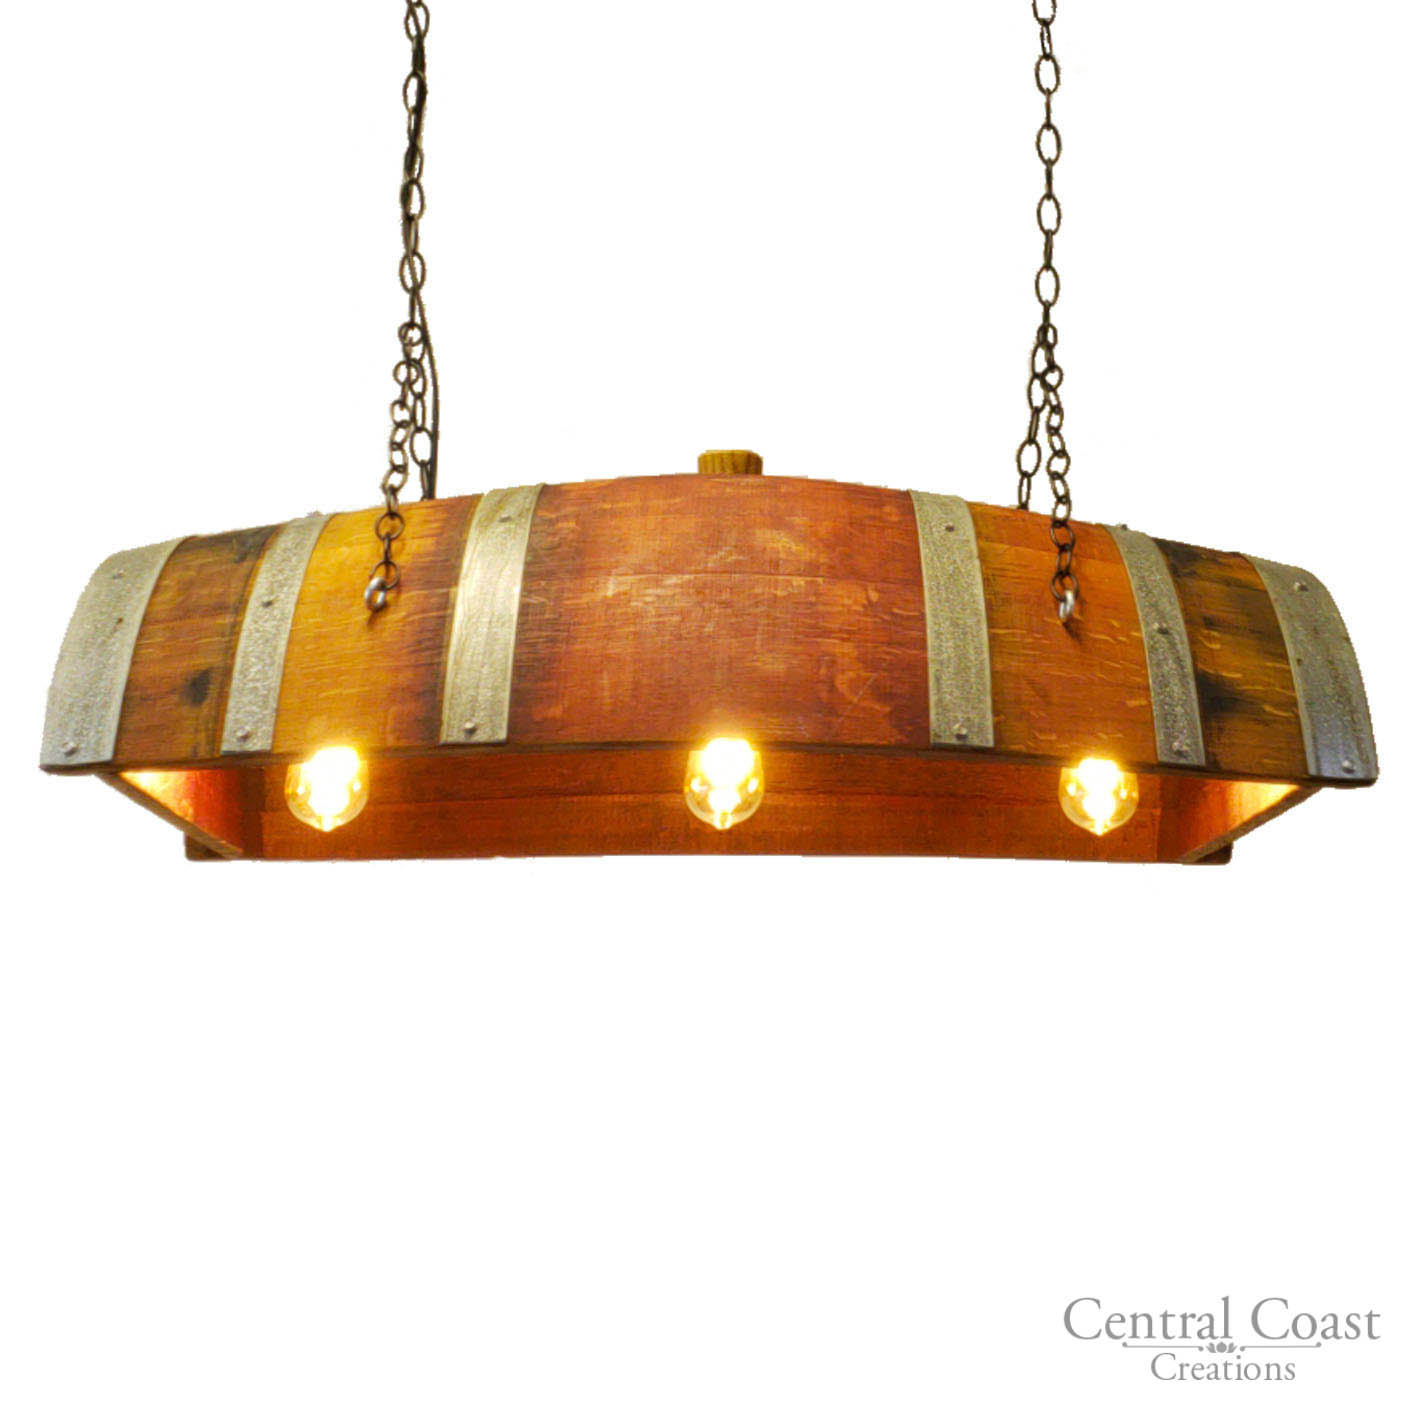 Details About Wine Barrel Hanging Lamp Chandeliere Light Fixture Rustic Furniture Home Decor